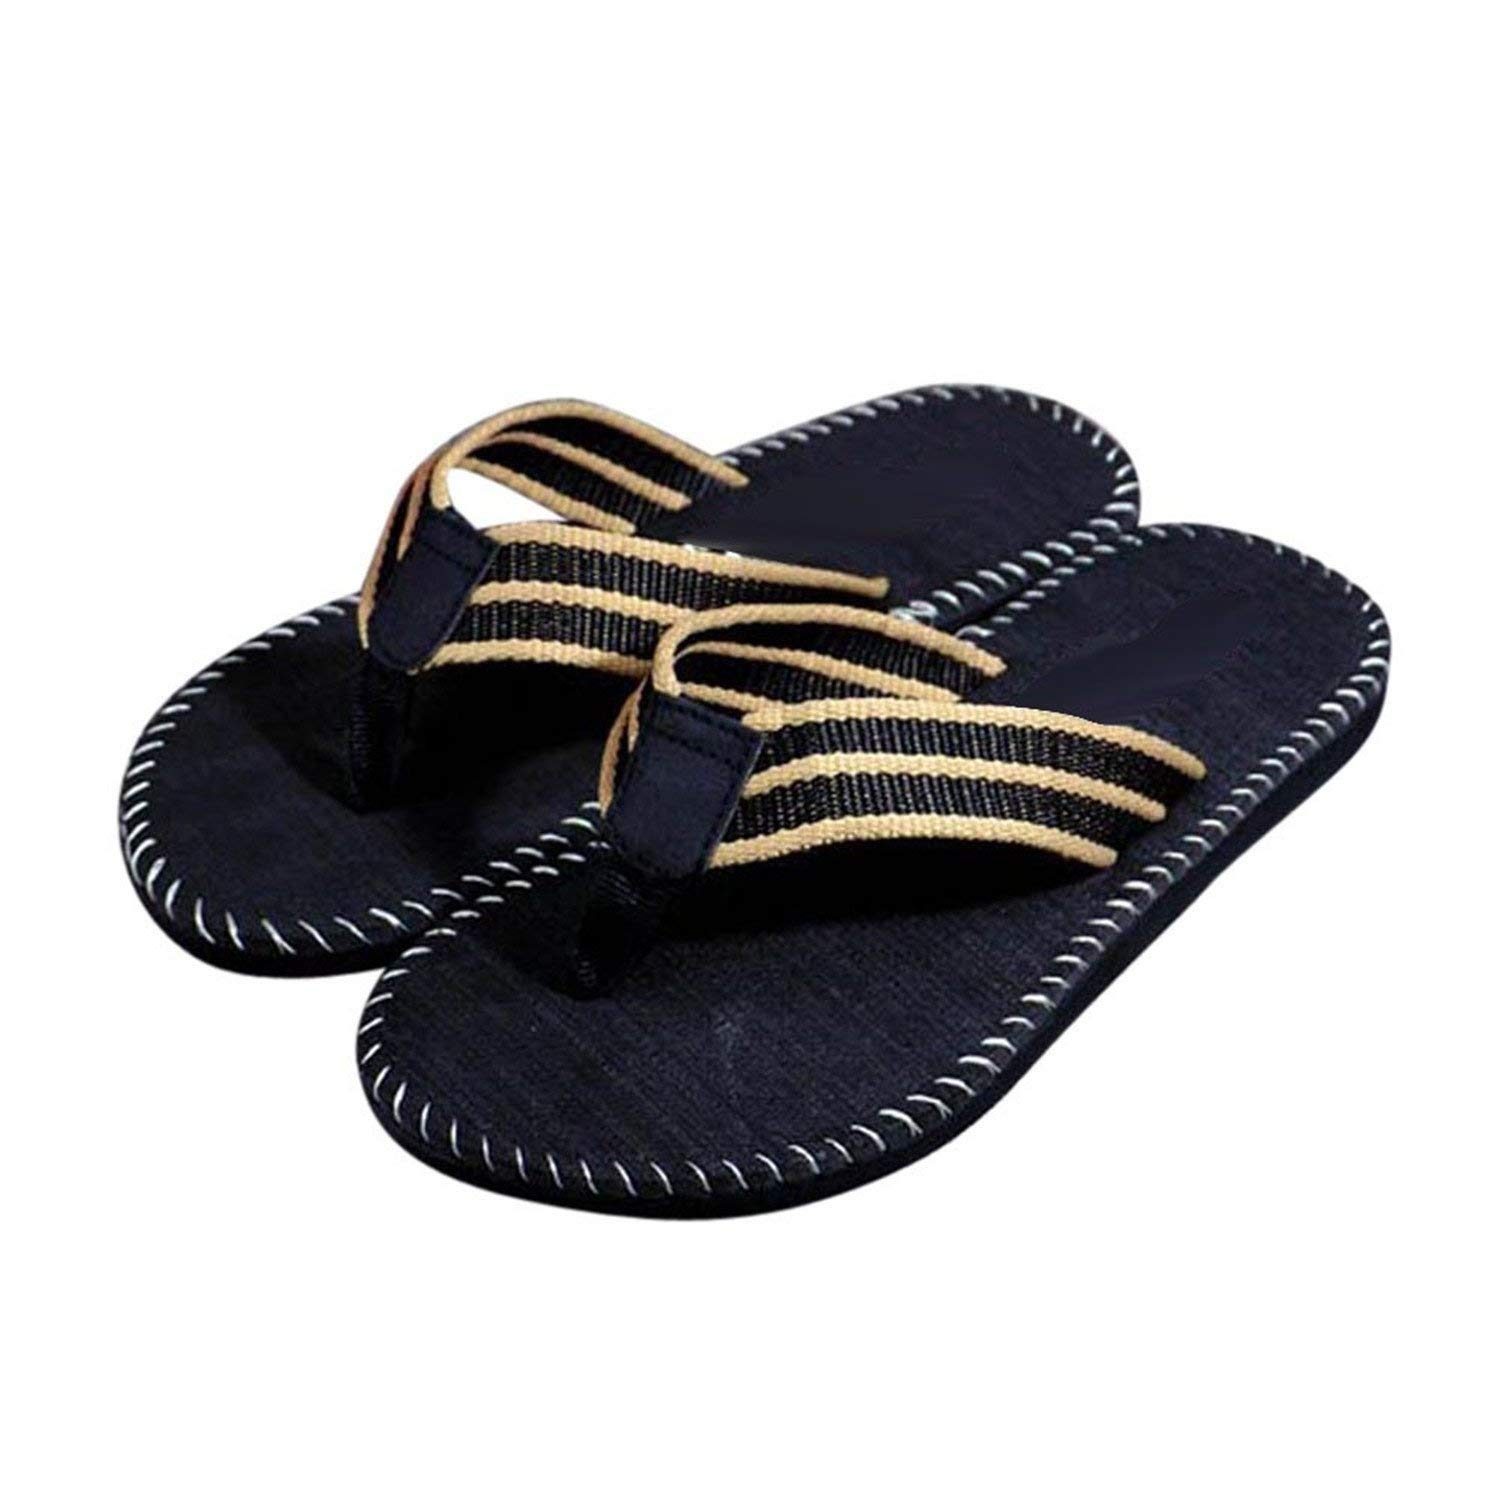 a2b55cc51 Get Quotations · Marvin Cook New Arrival Men Summer Flip Flops Casual Beach  Sandals Outdoor Slipper Flip-Flops